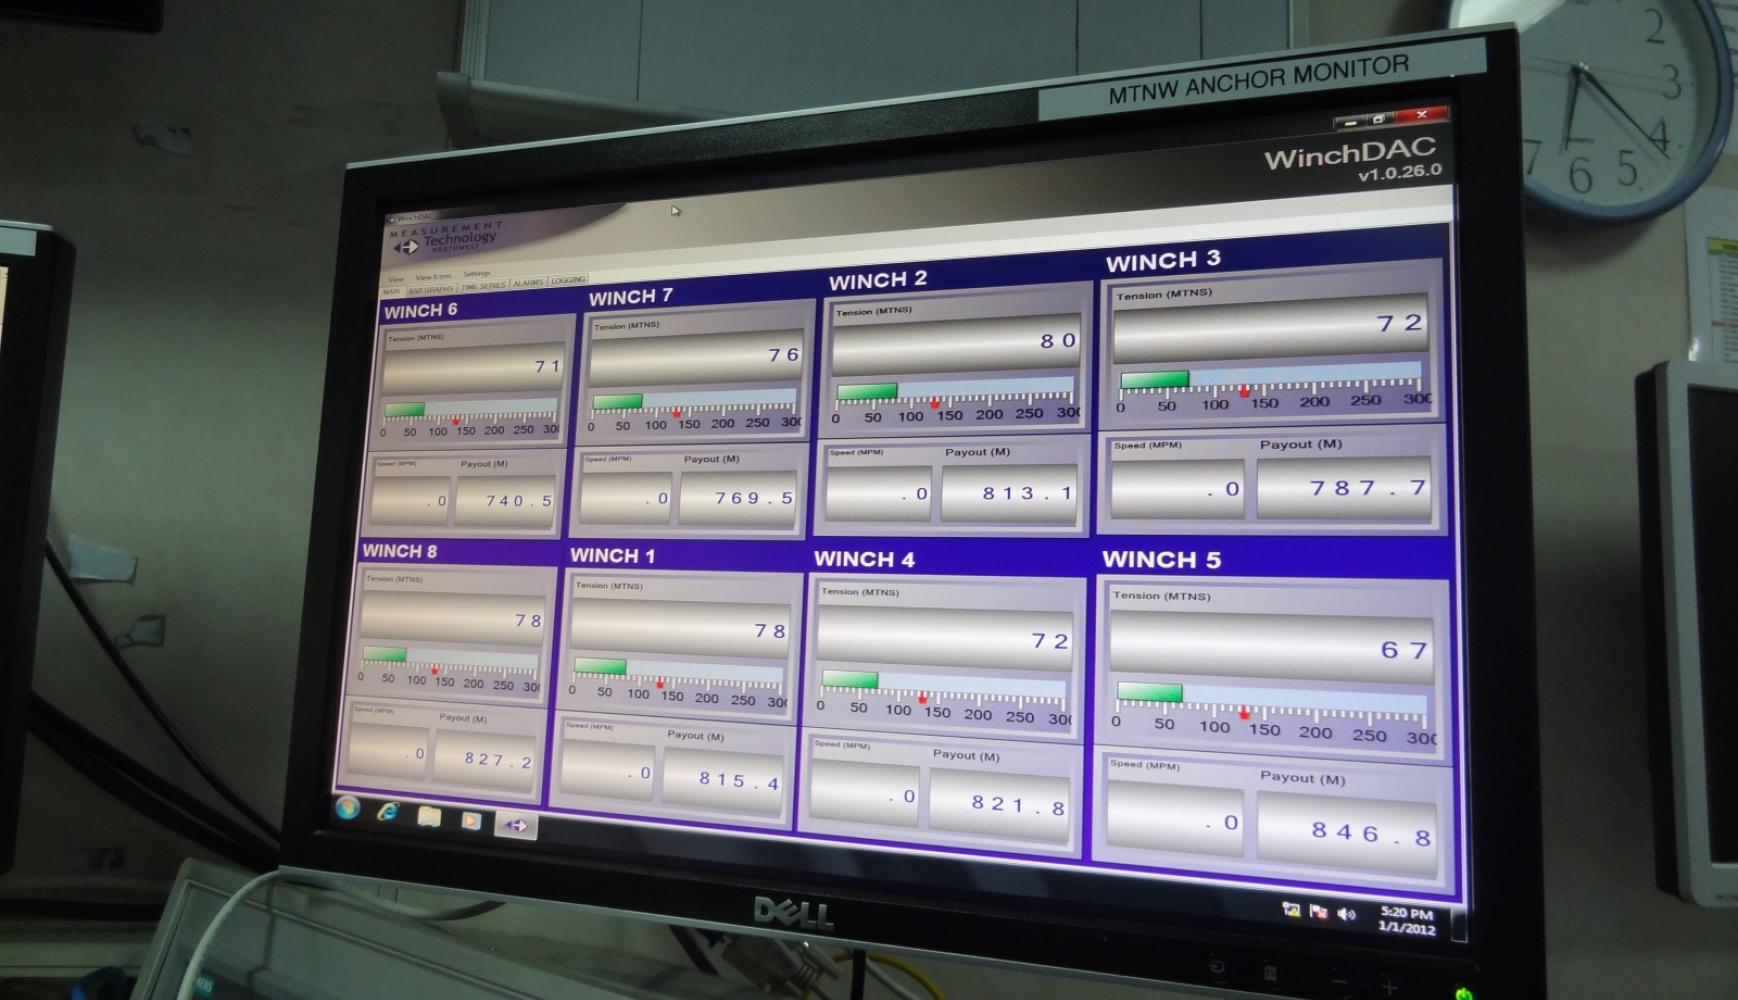 WinchDAC Software Viewing 8 Mooring Winches, tension instrumentation